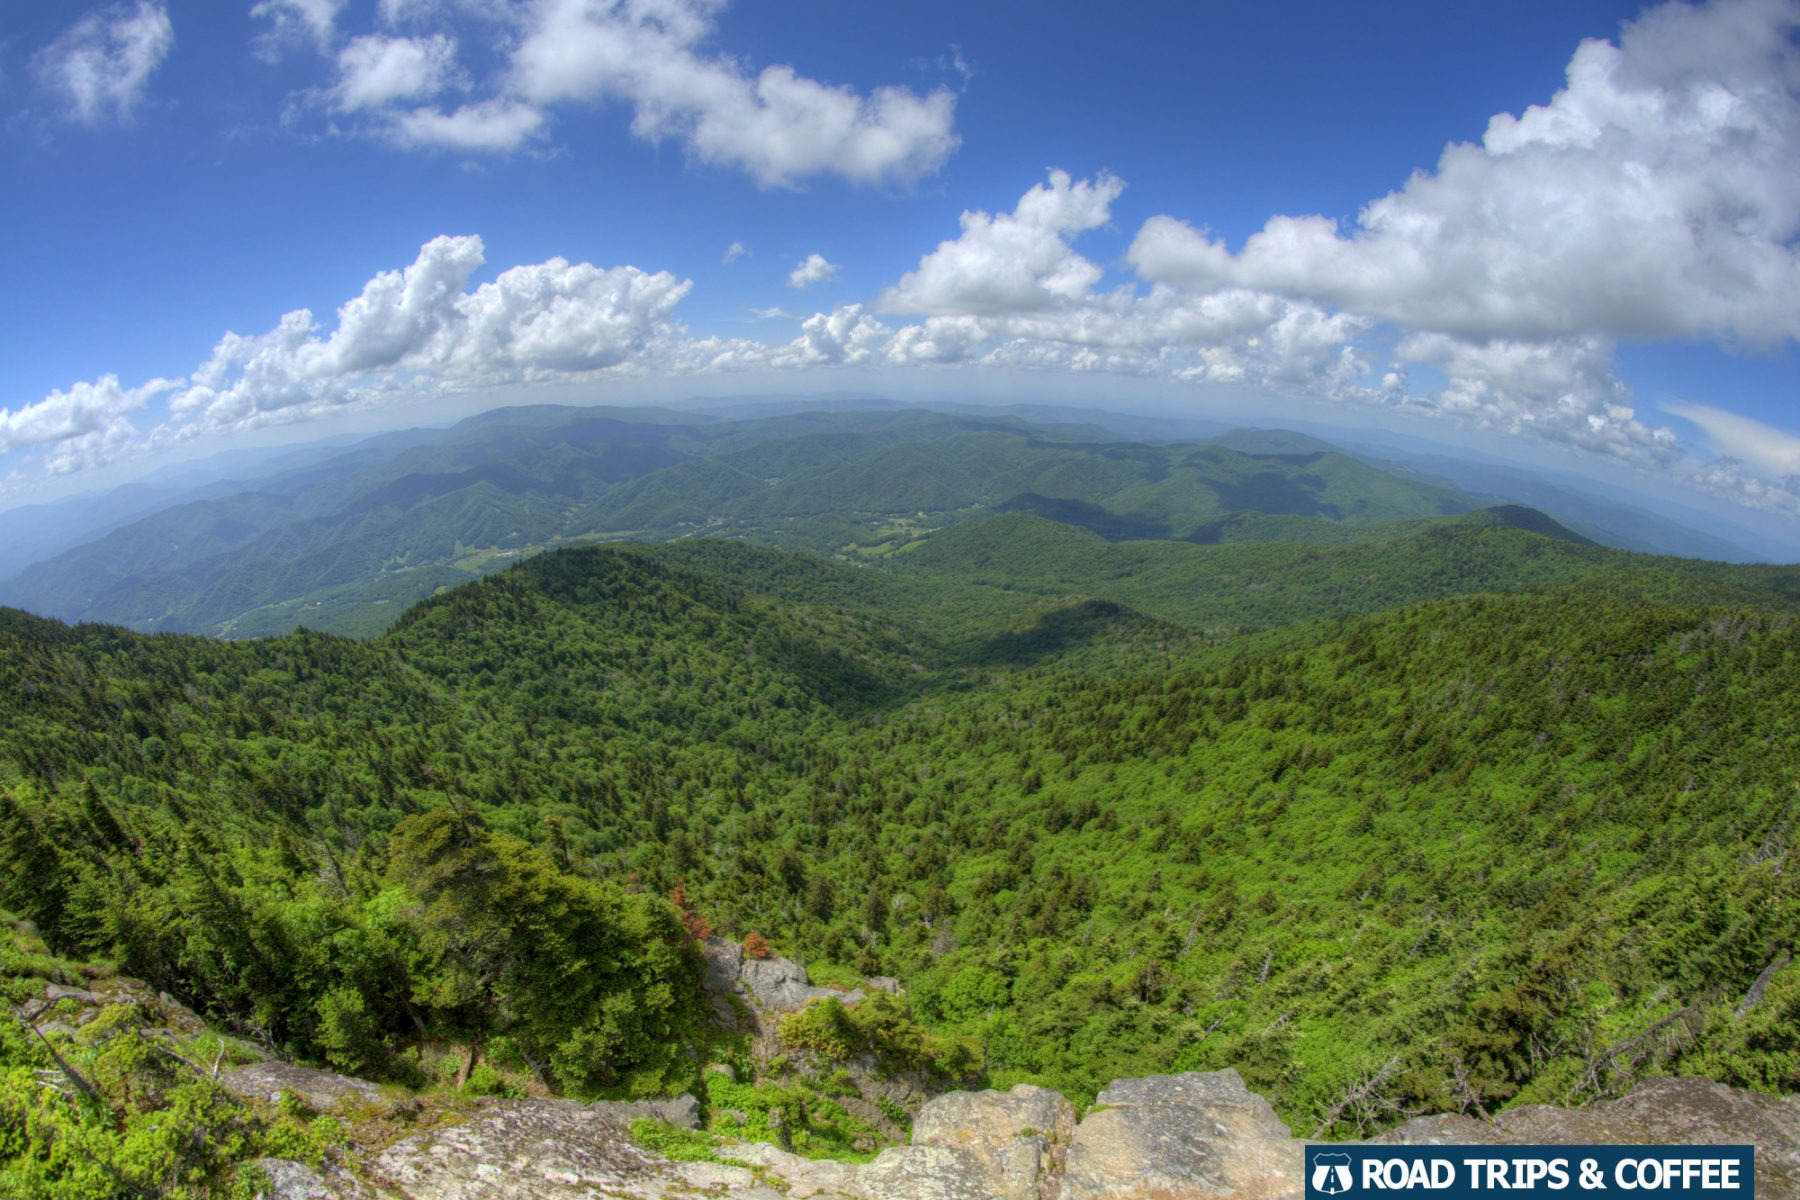 View of landscape from a sheer bluff at Roan High Bluff on Roan Mountain in Tennessee